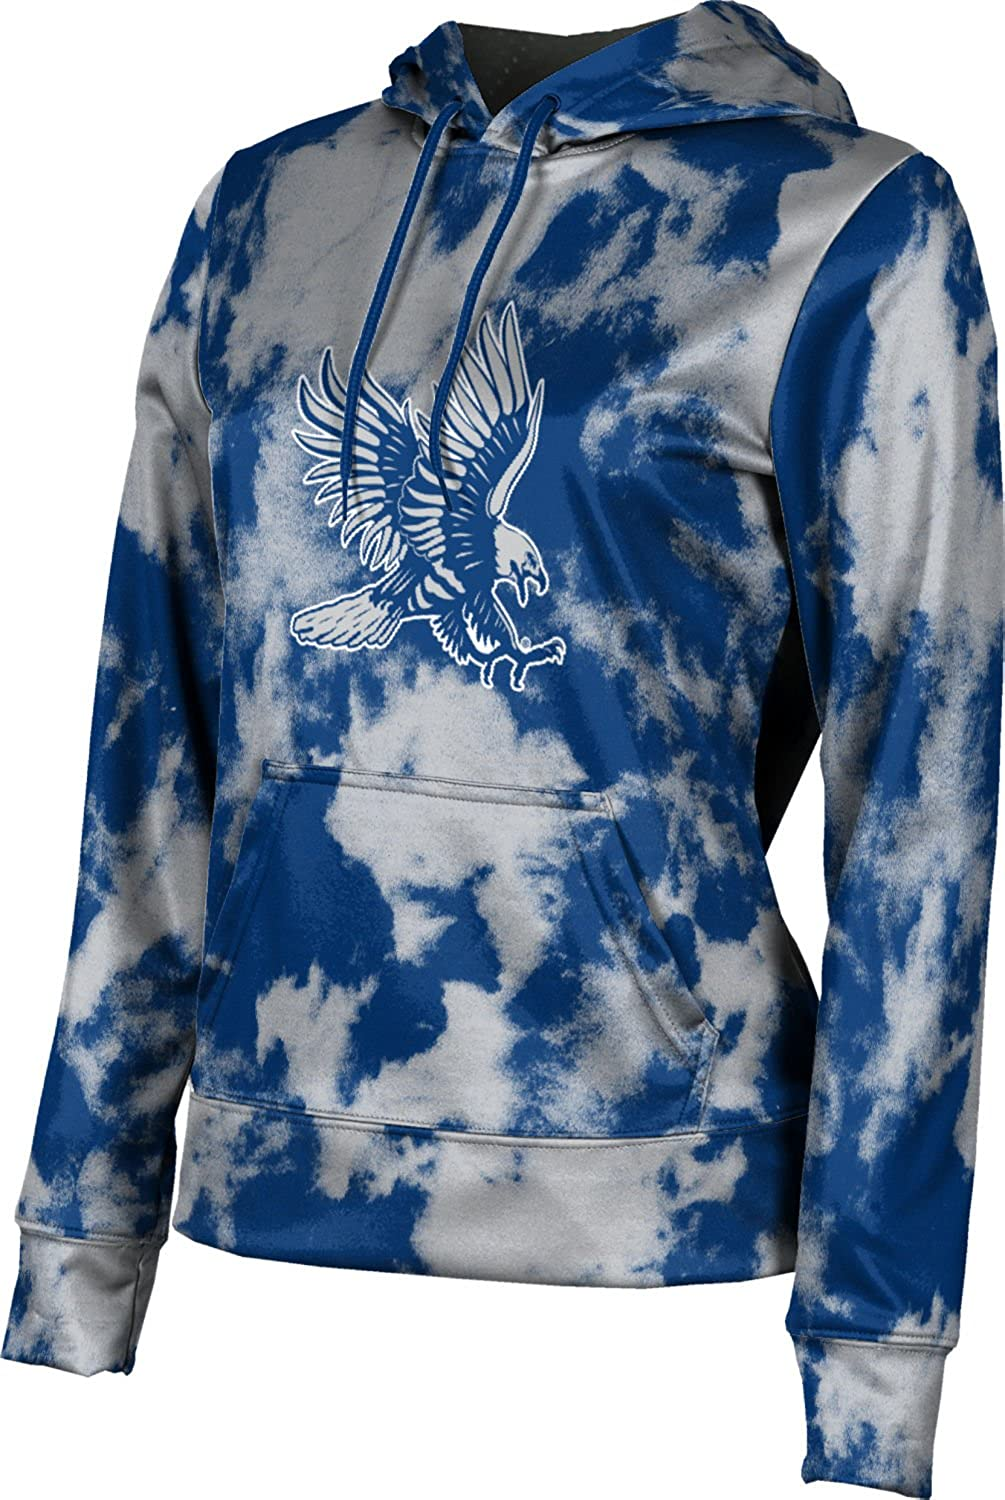 ProSphere Dickinson State University Girls Pullover Hoodie School Spirit Sweatshirt Grunge